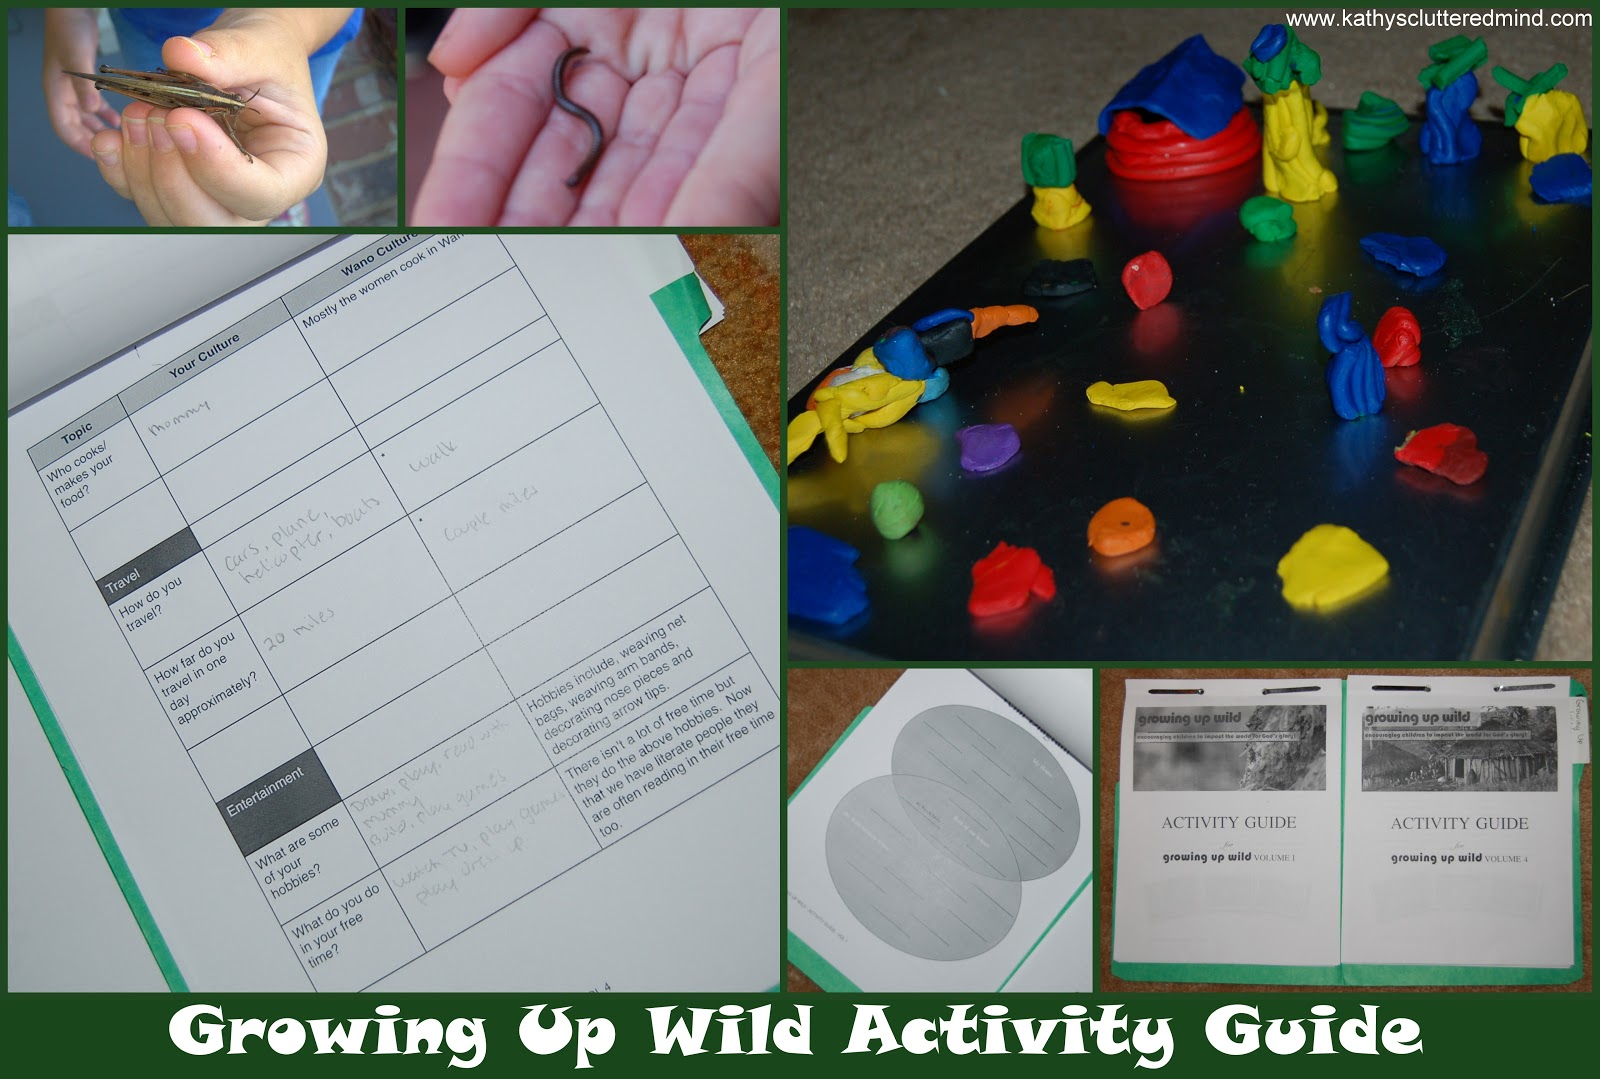 Kathys Cluttered Mind Growing Up Wild Dvd Review